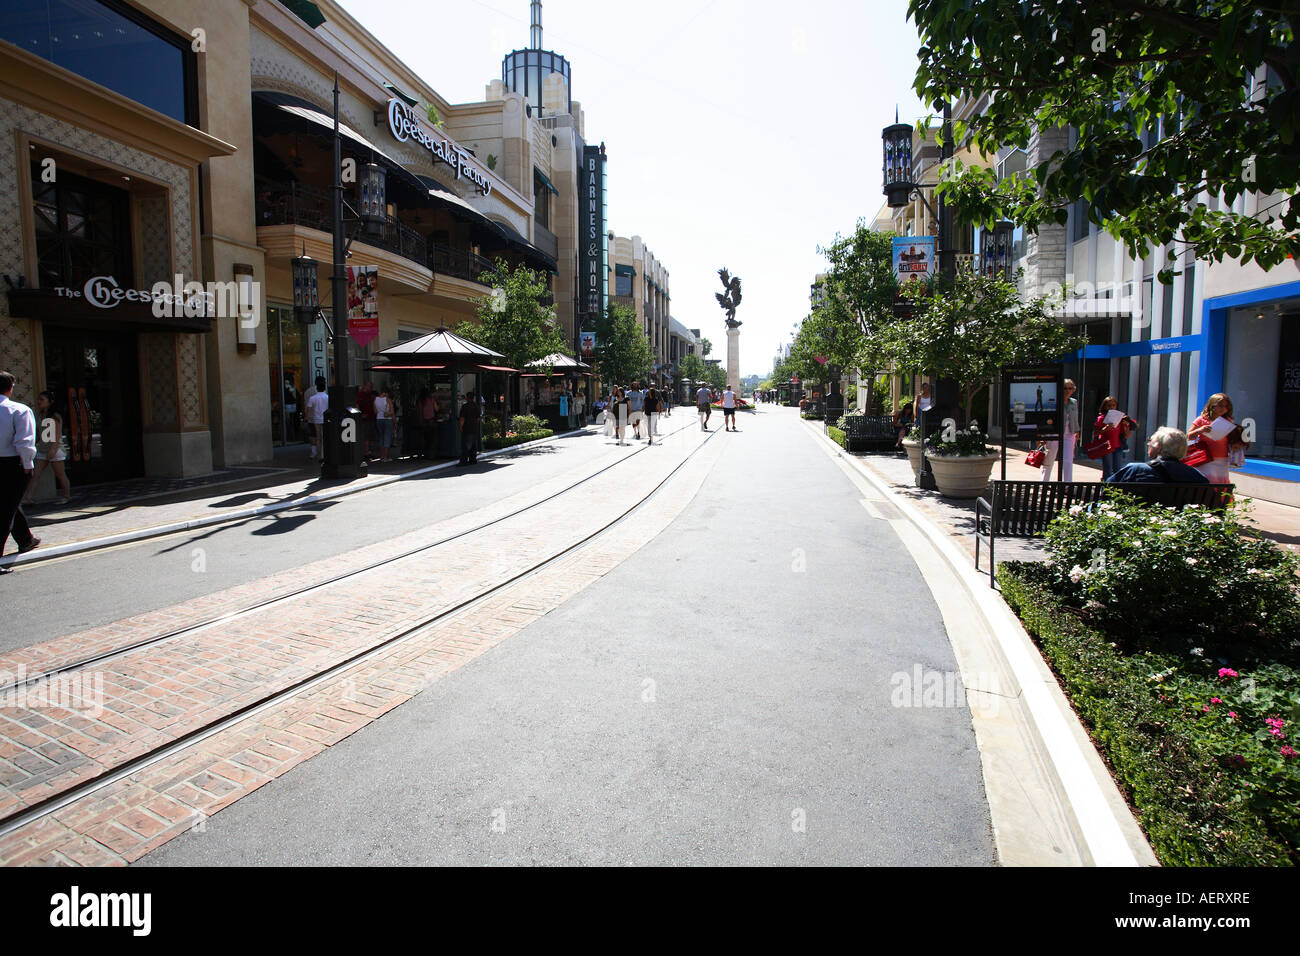 The Grove shopping area near the Farmers market downtown Los